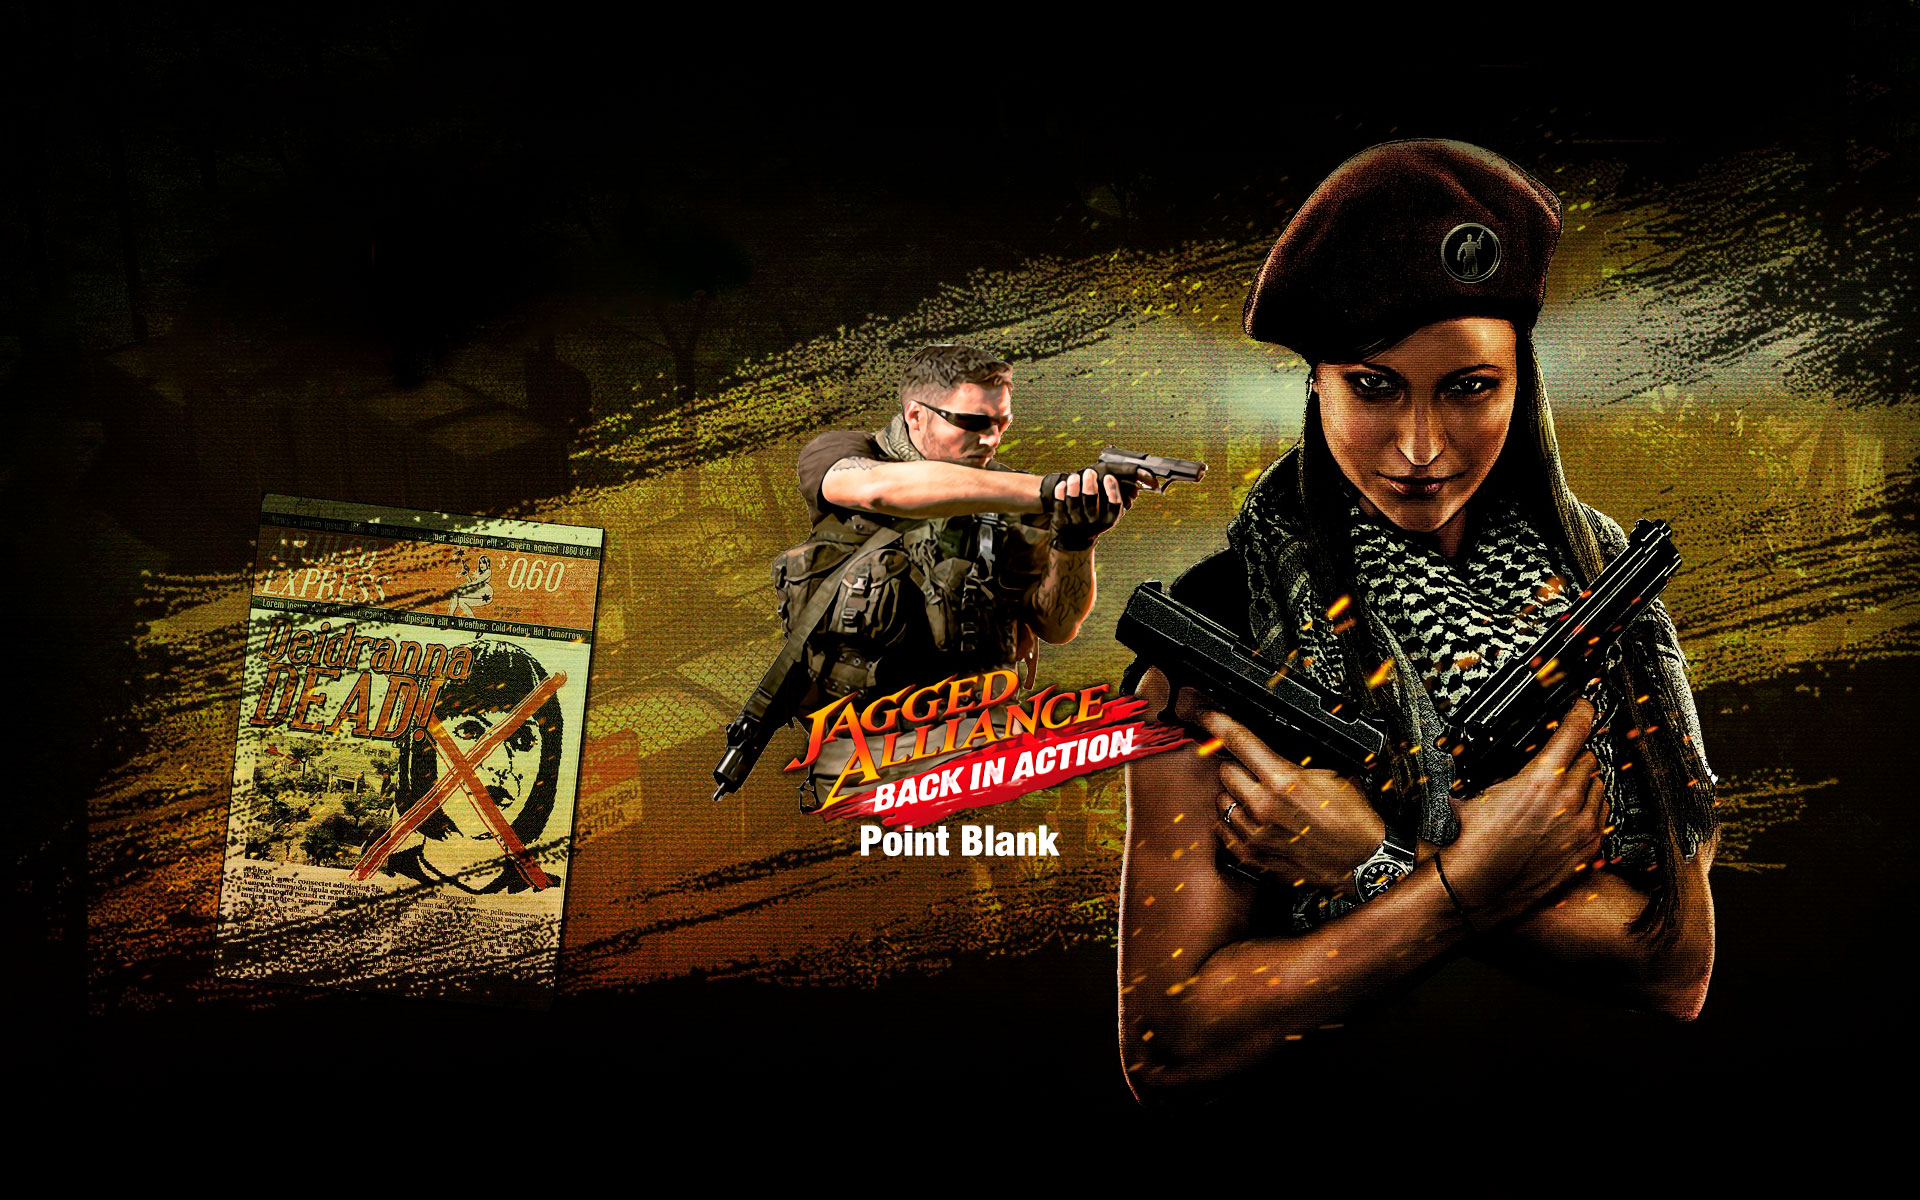 Jagged Alliance : Back In Action Point - Blank (DLC 2)